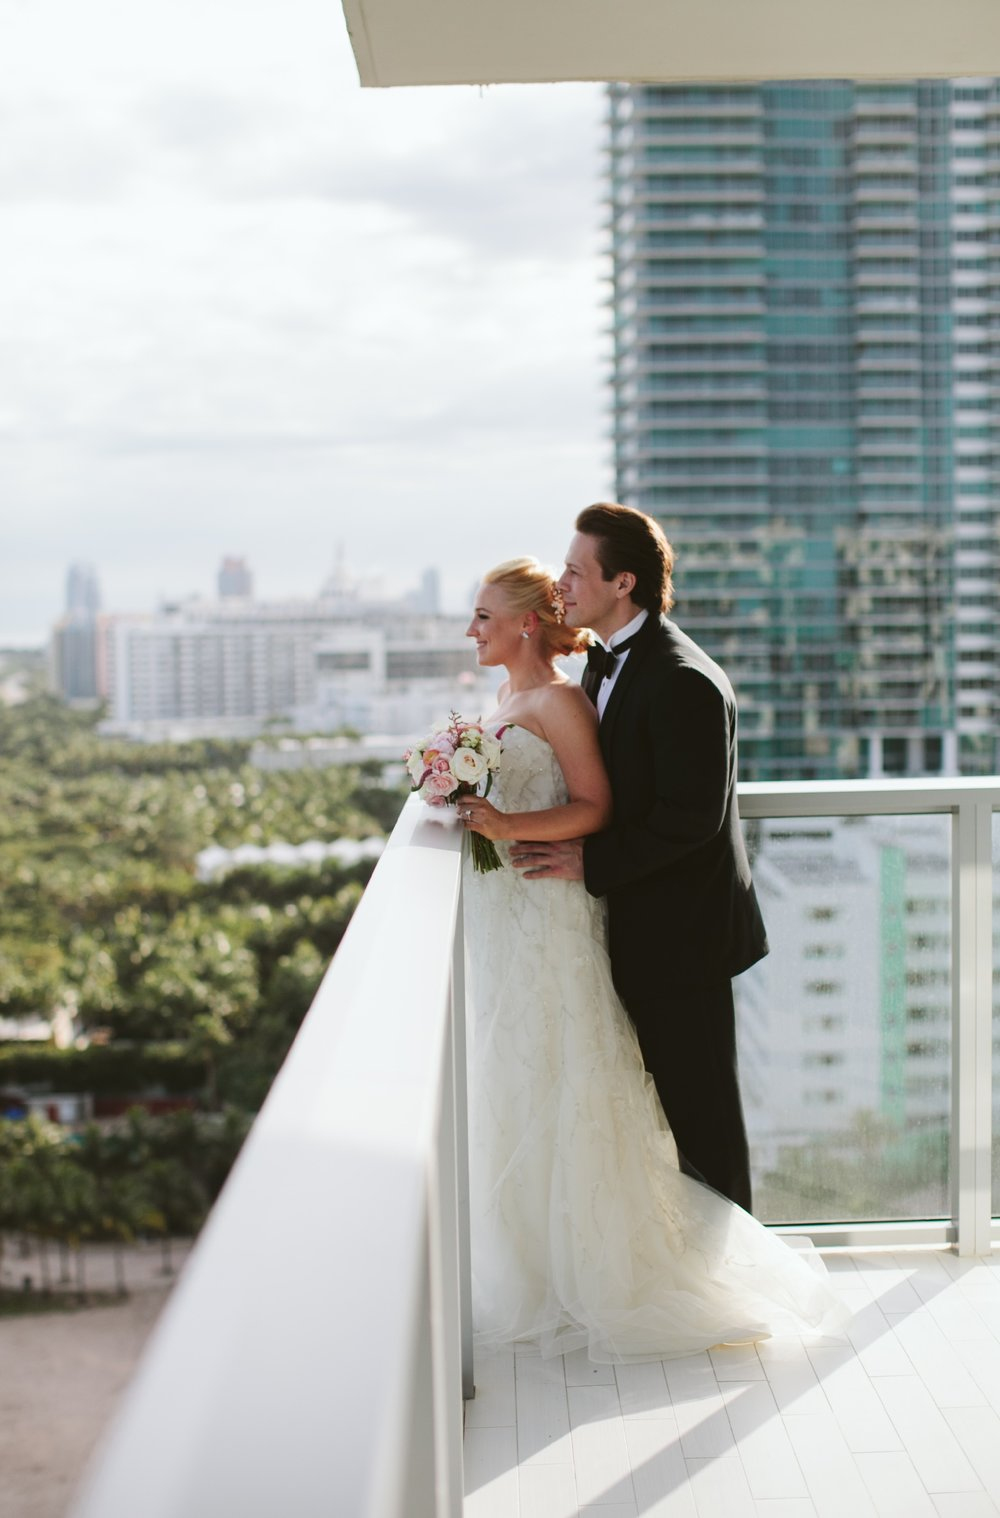 Jackie + Joe Wedding at the W South Beach Miami37.jpg